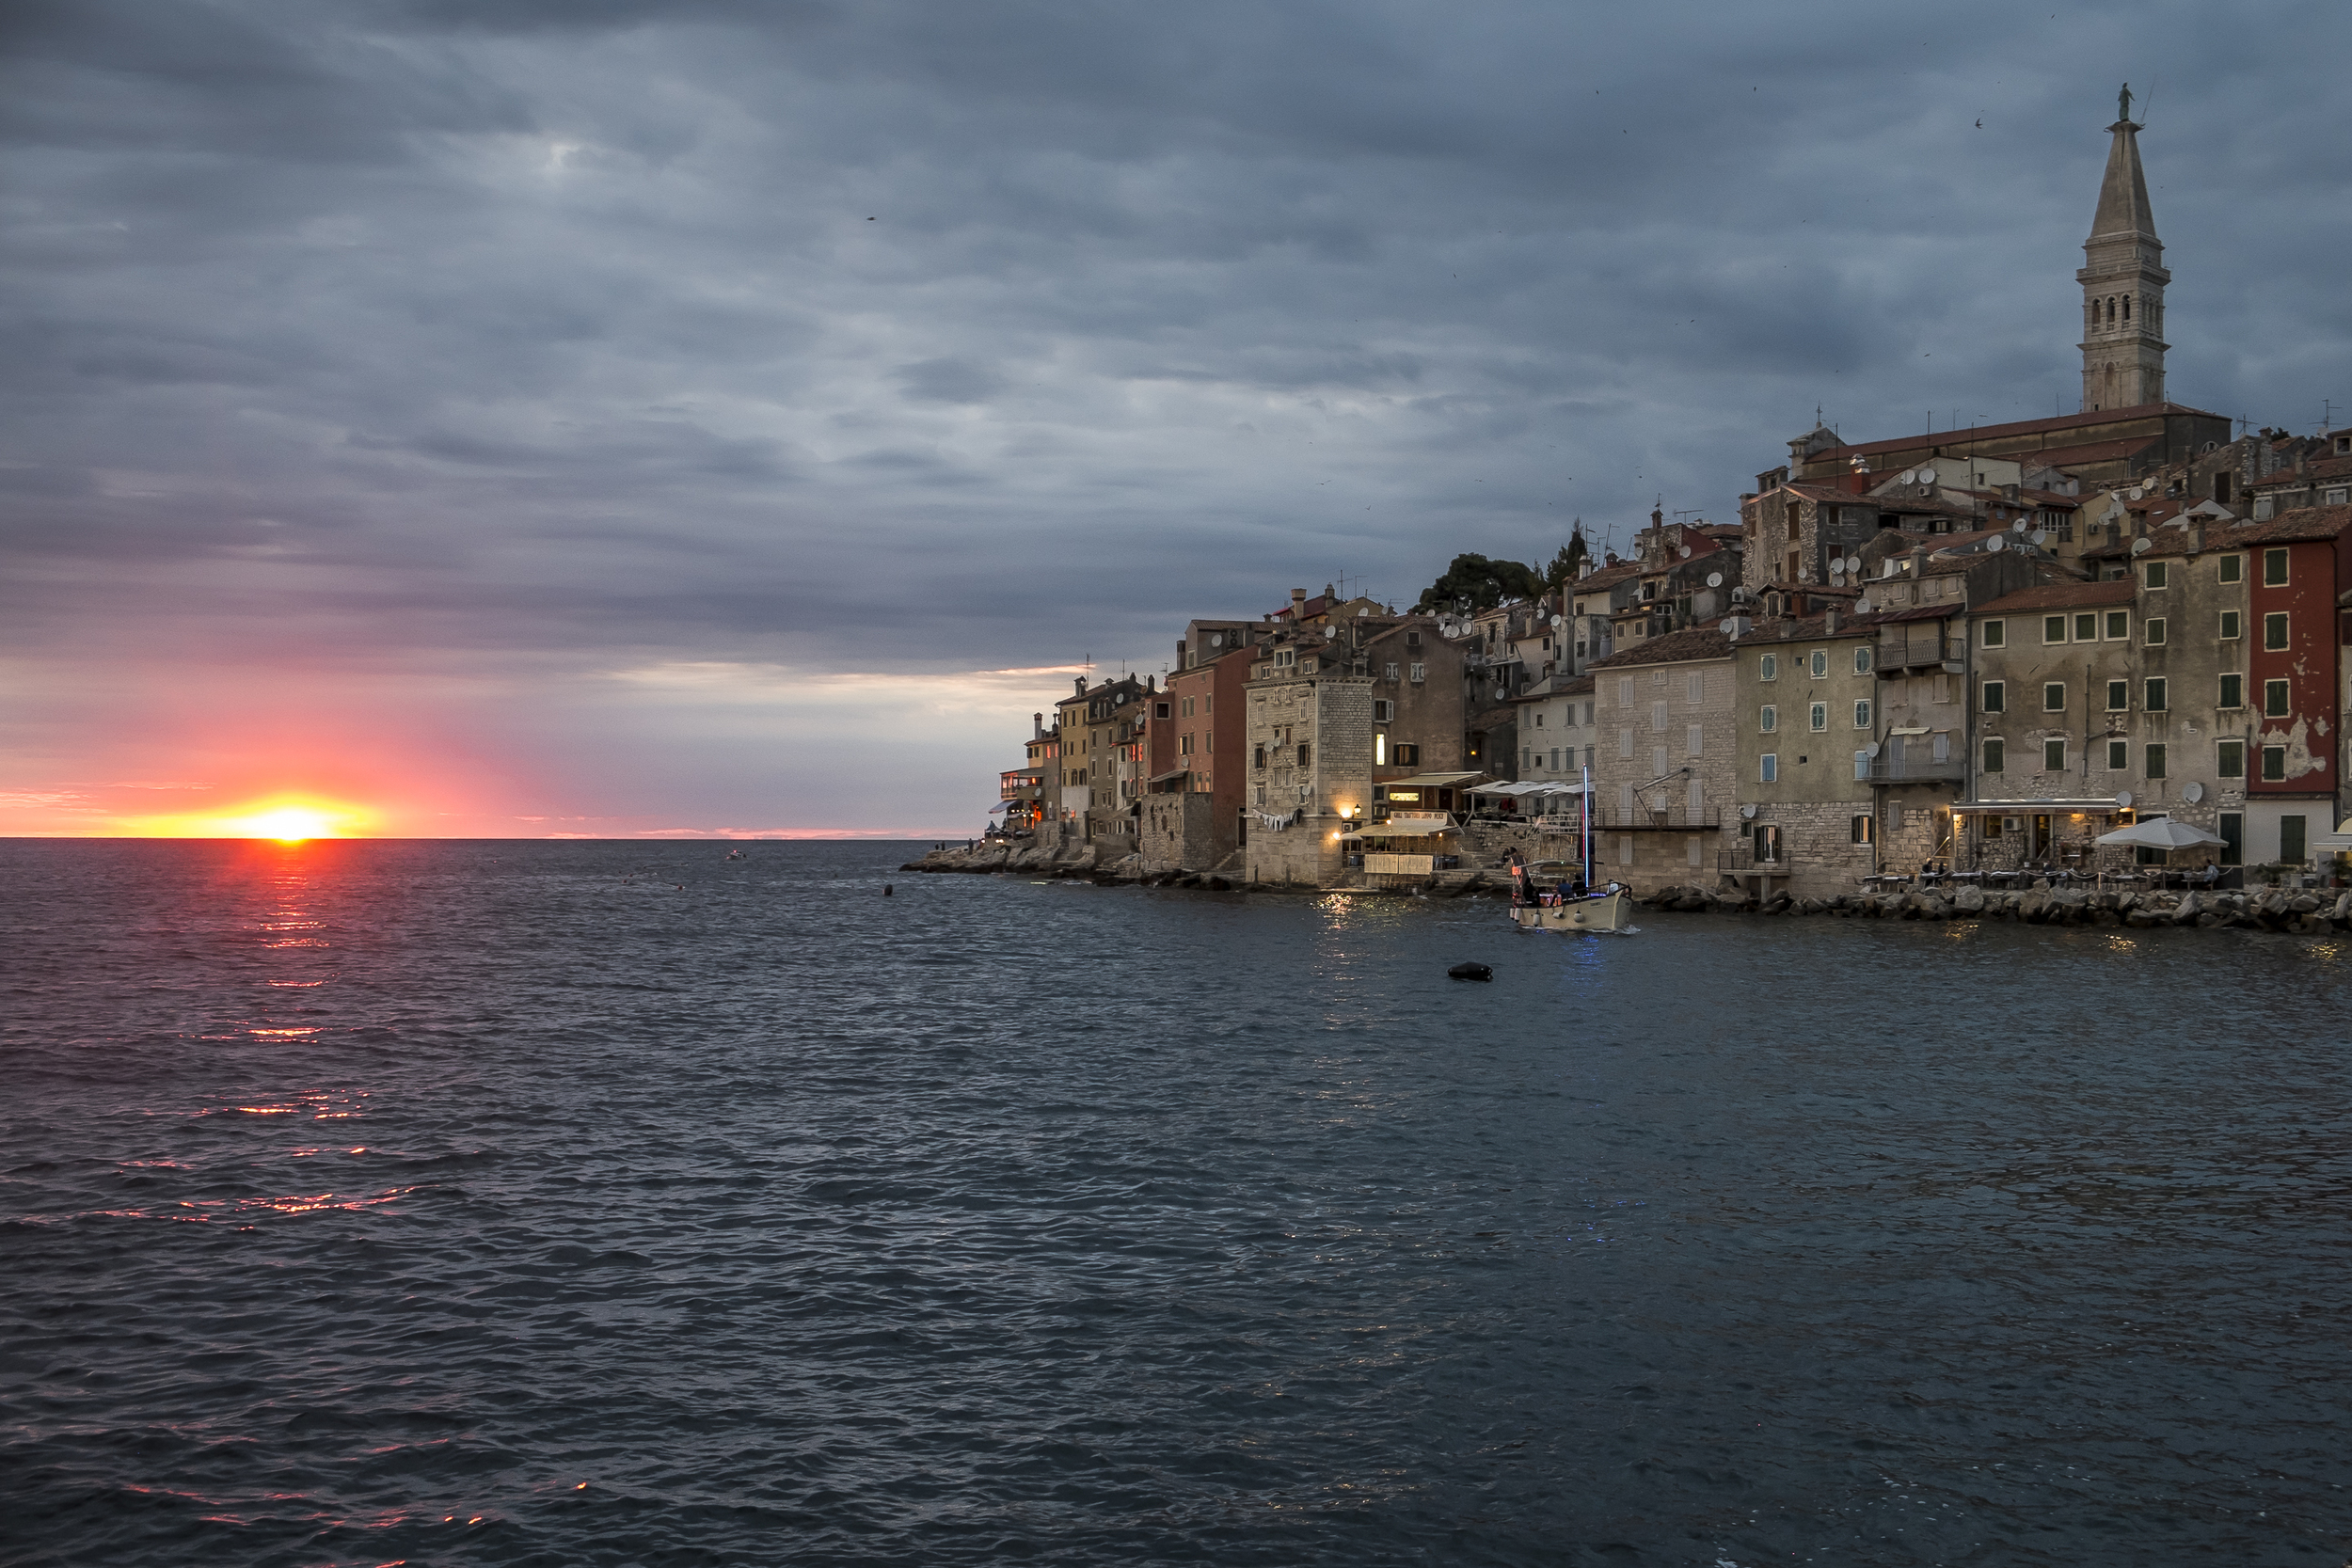 Rovinj-Sunset2-20140517-DSCF5161.jpg